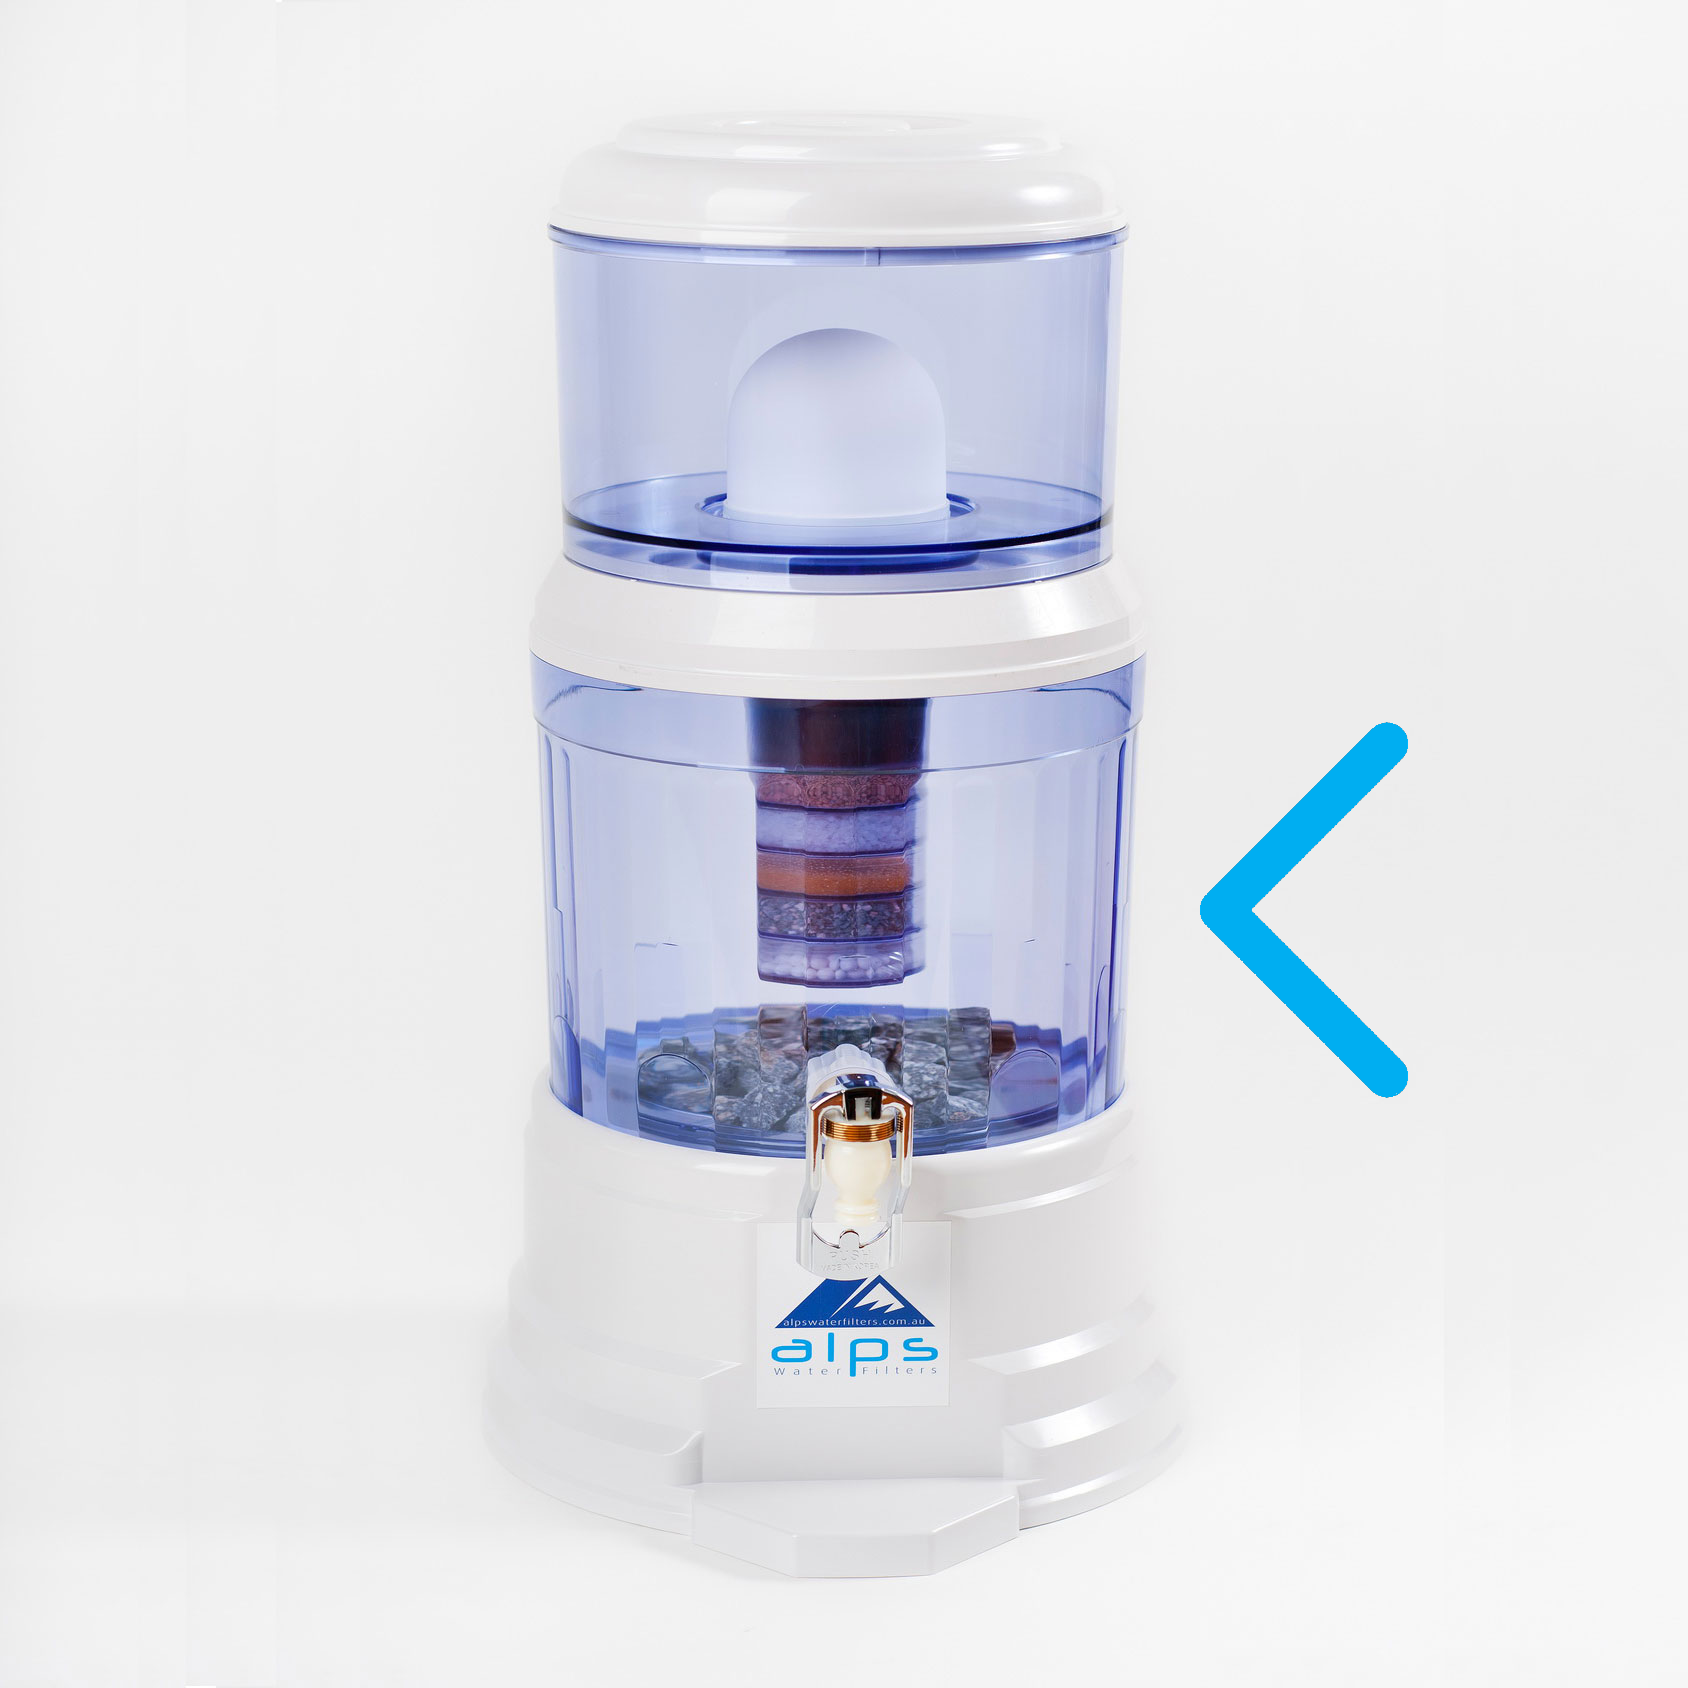 alps water filter instructions